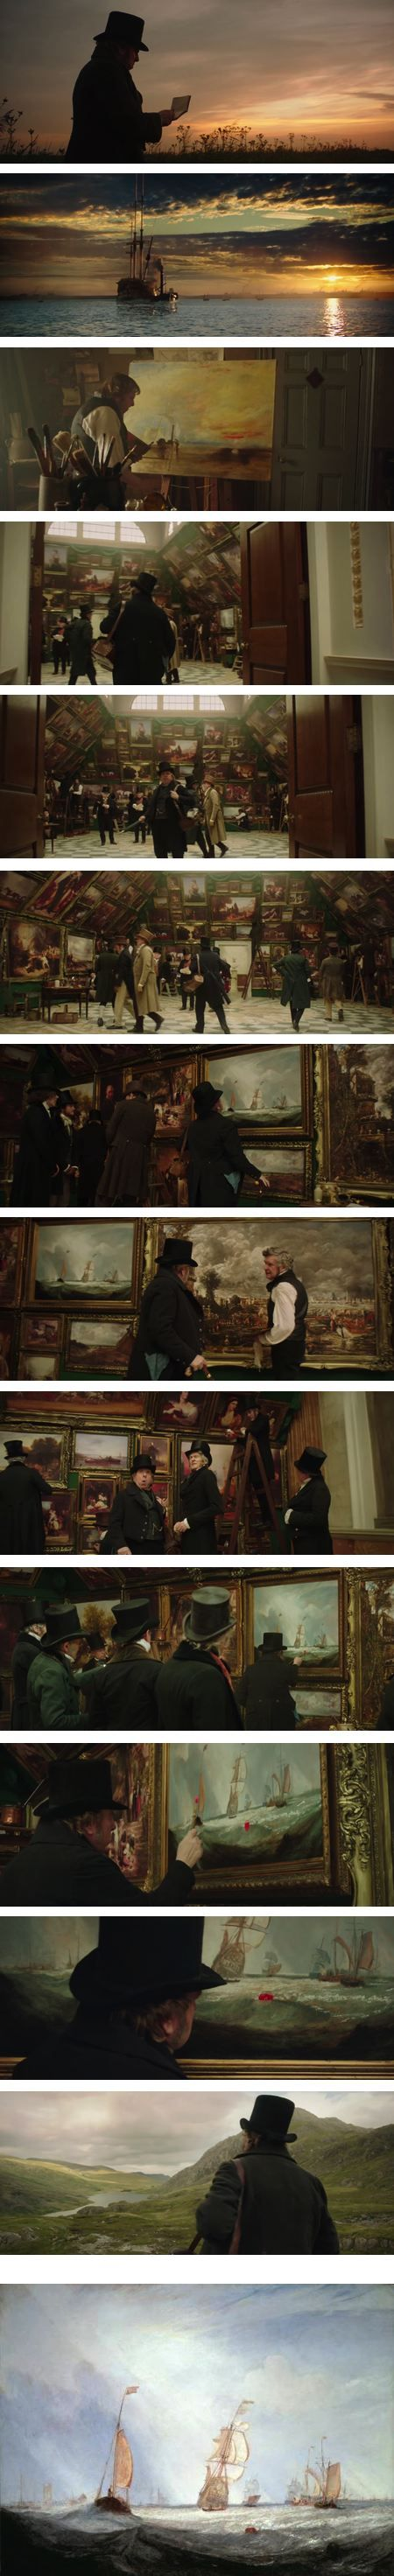 Mr. Turner, JMW Turner biopic starring Timothy Spall It was BEAUTIFL and mindful and Timothy Spall WAS BRILLIANT and I LOVED it. It will be a flu movie for me. 20/10